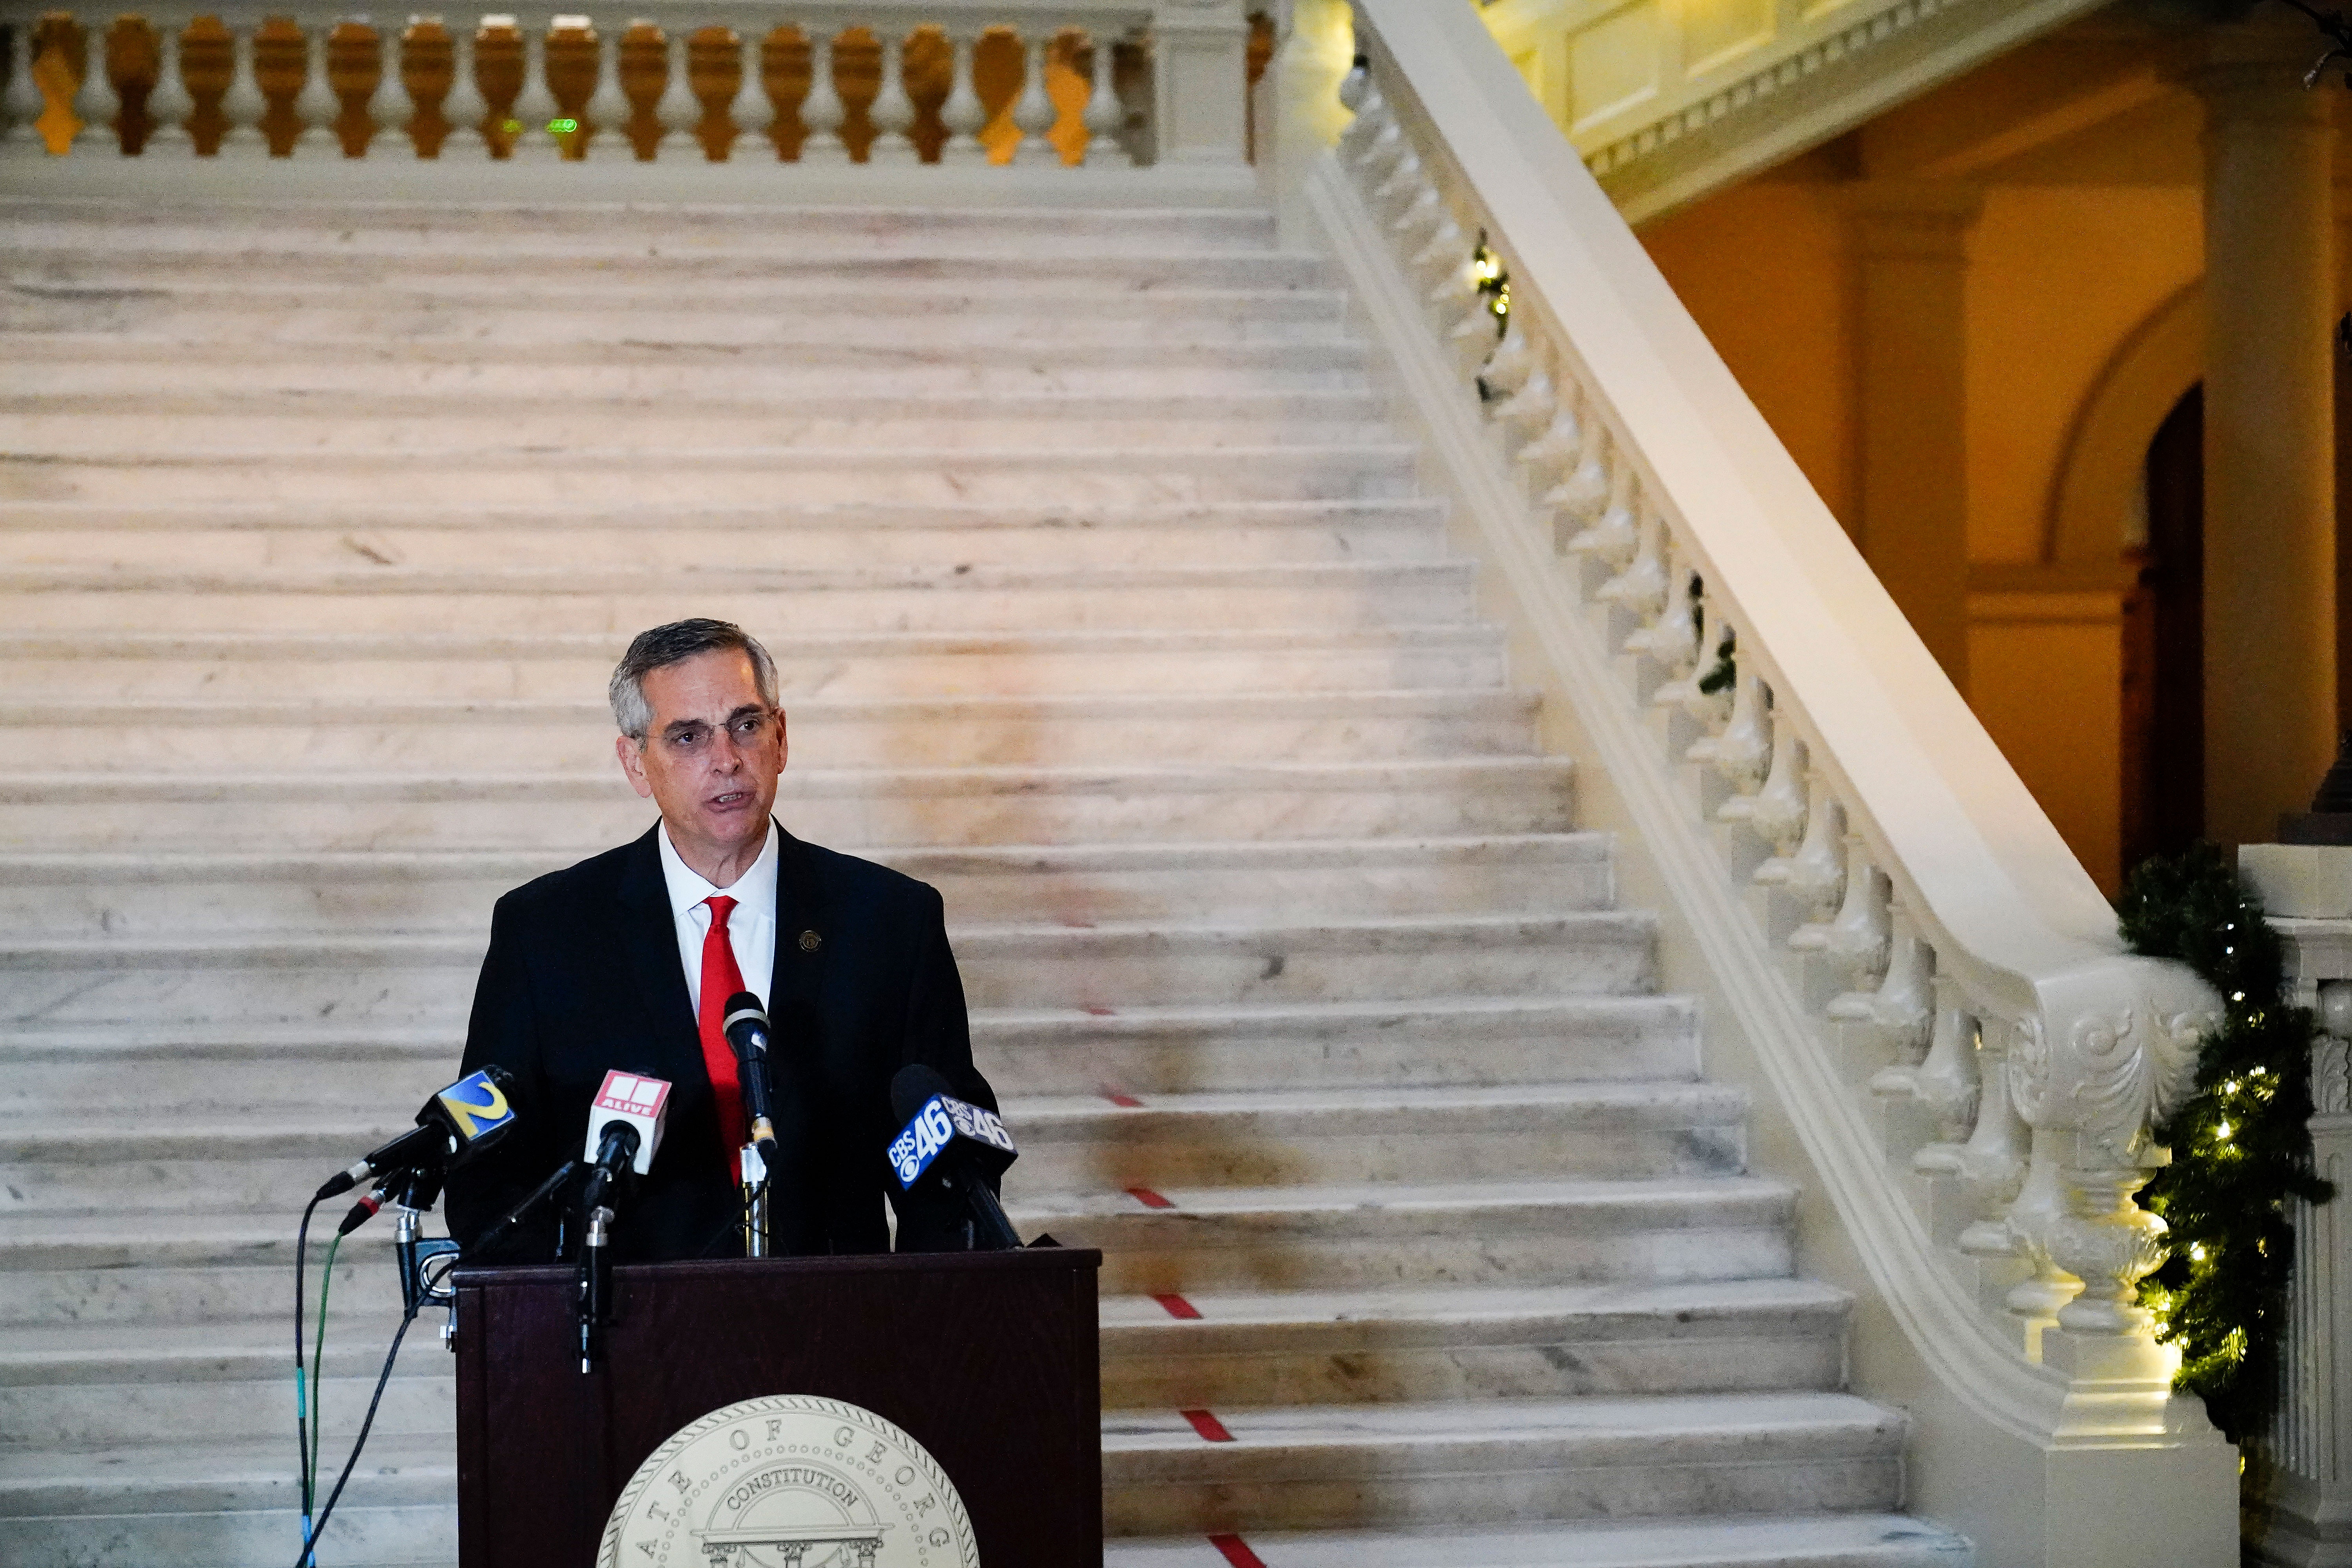 Georgia Secretary of State Brad Raffensperger speaks during a news conference in Atlanta on November 30.